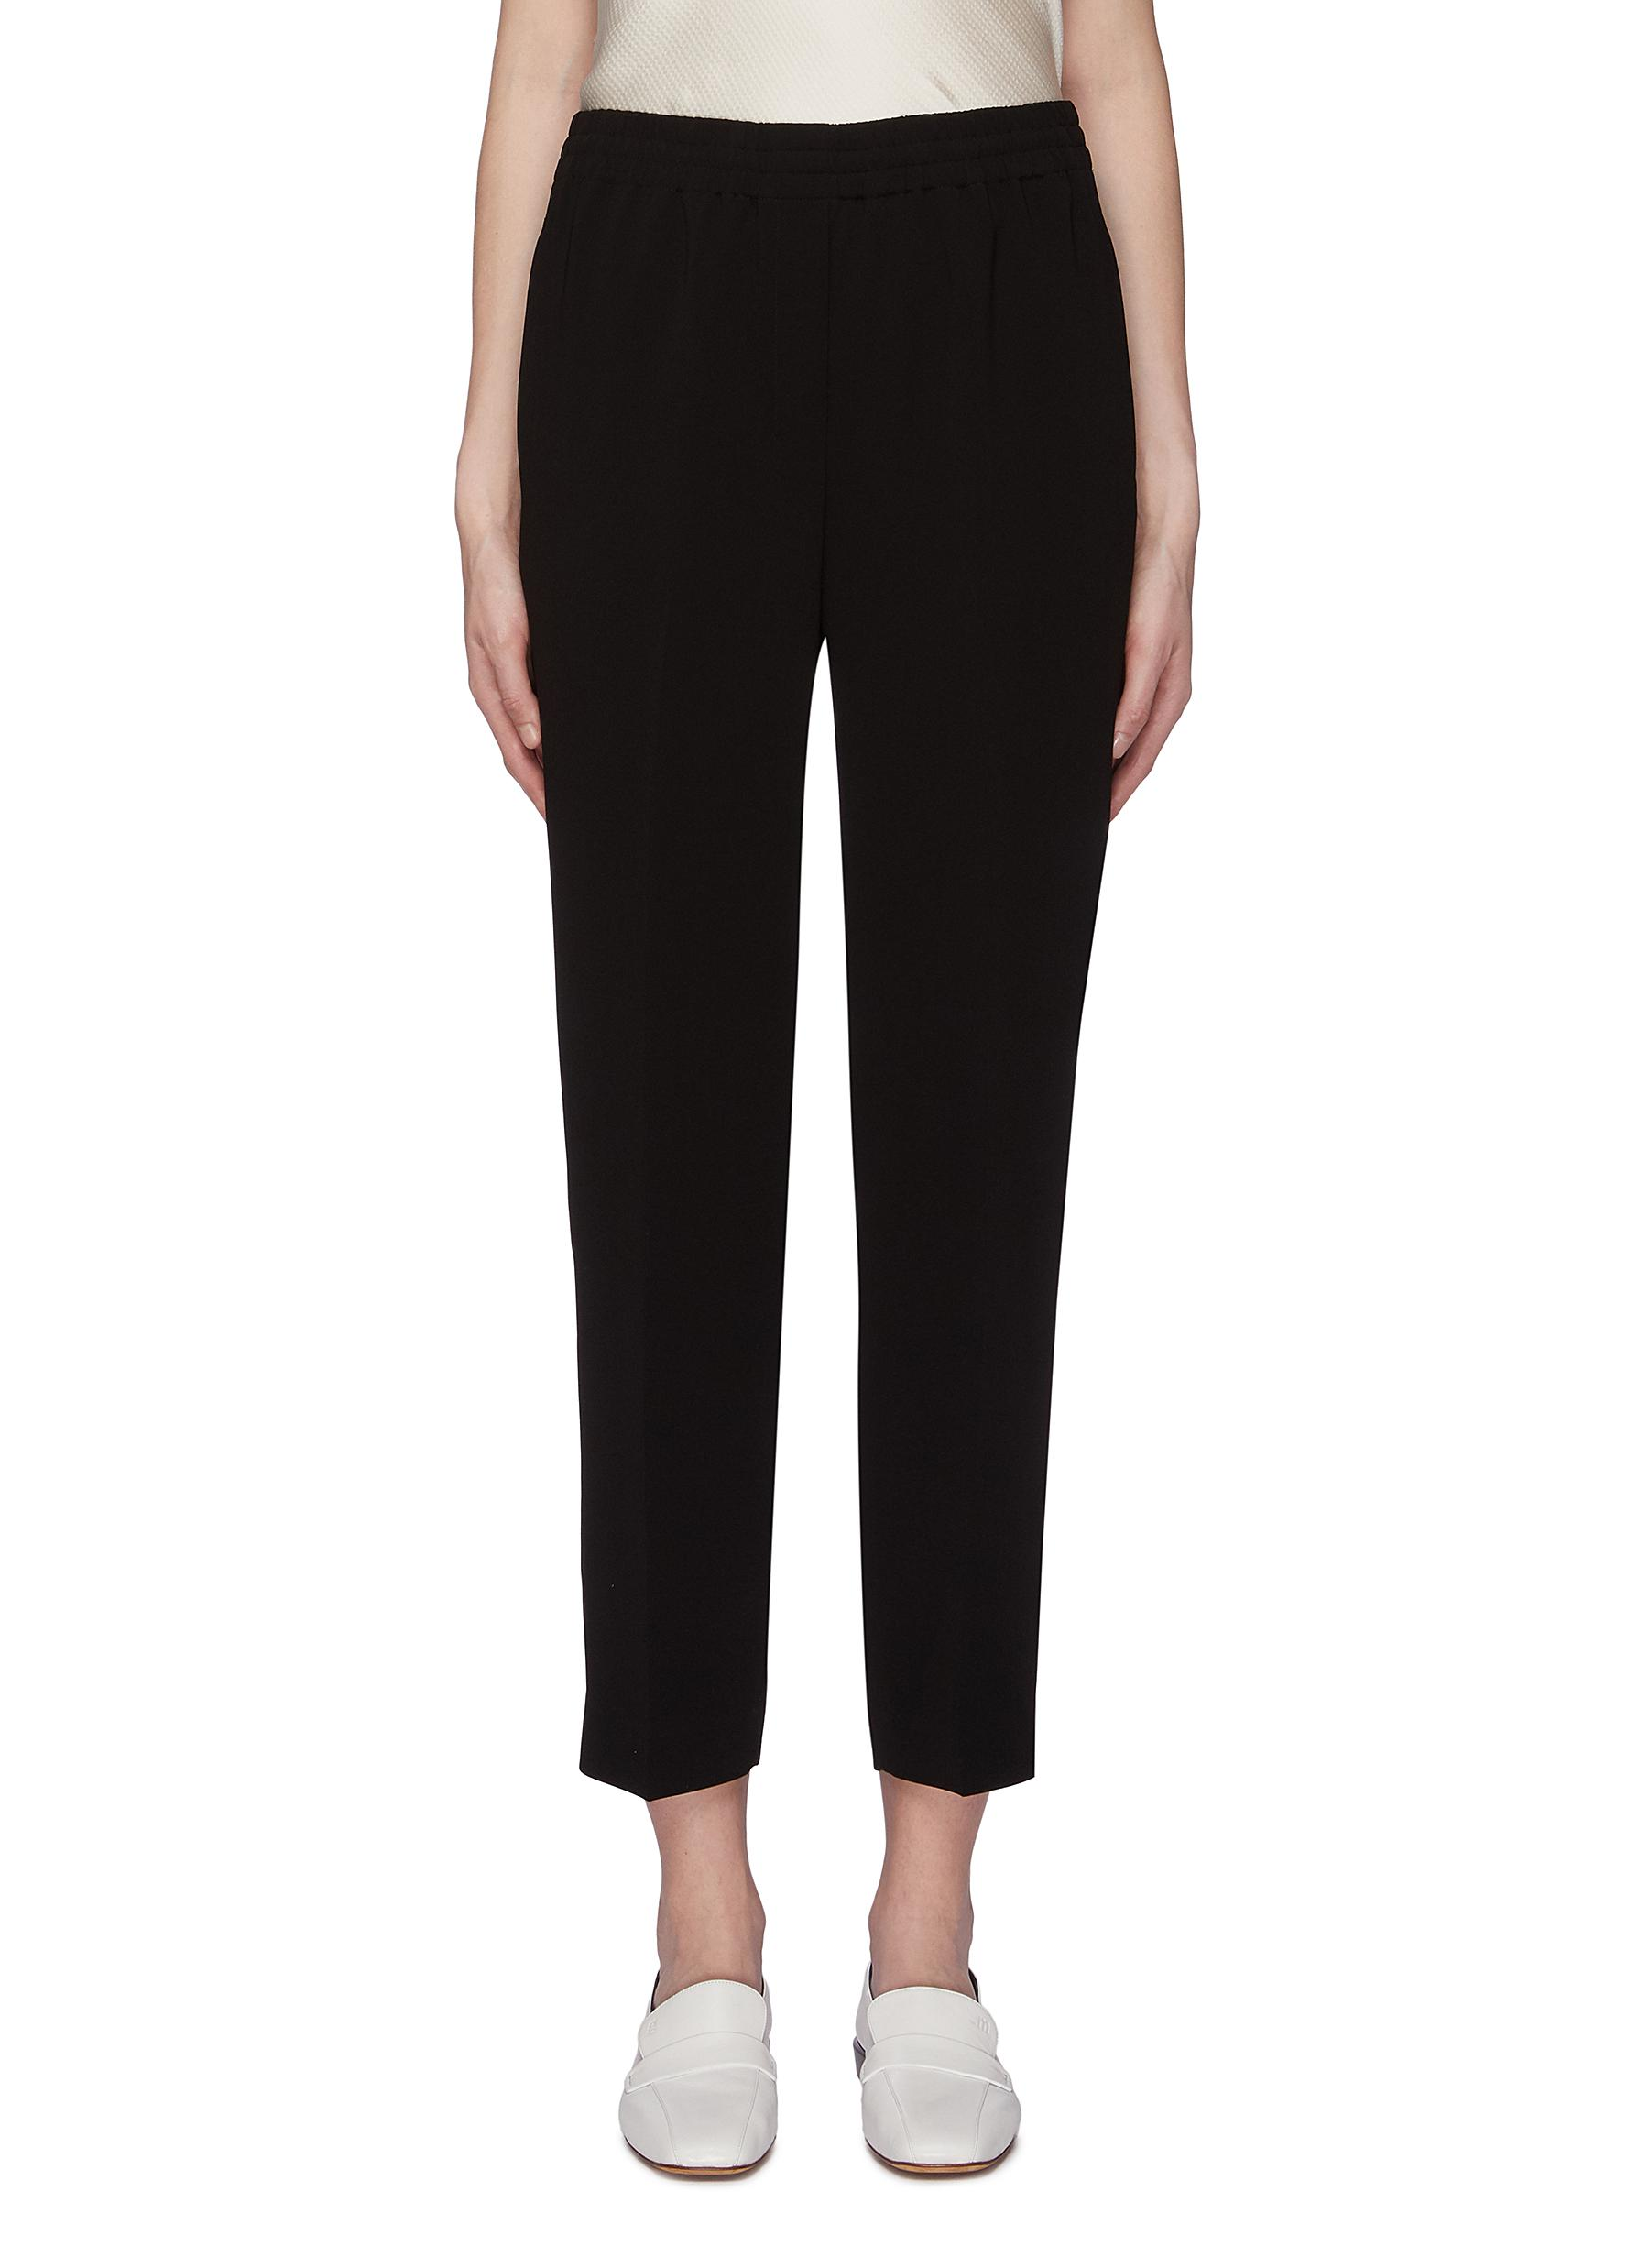 Easy crepe jogging pants by Theory